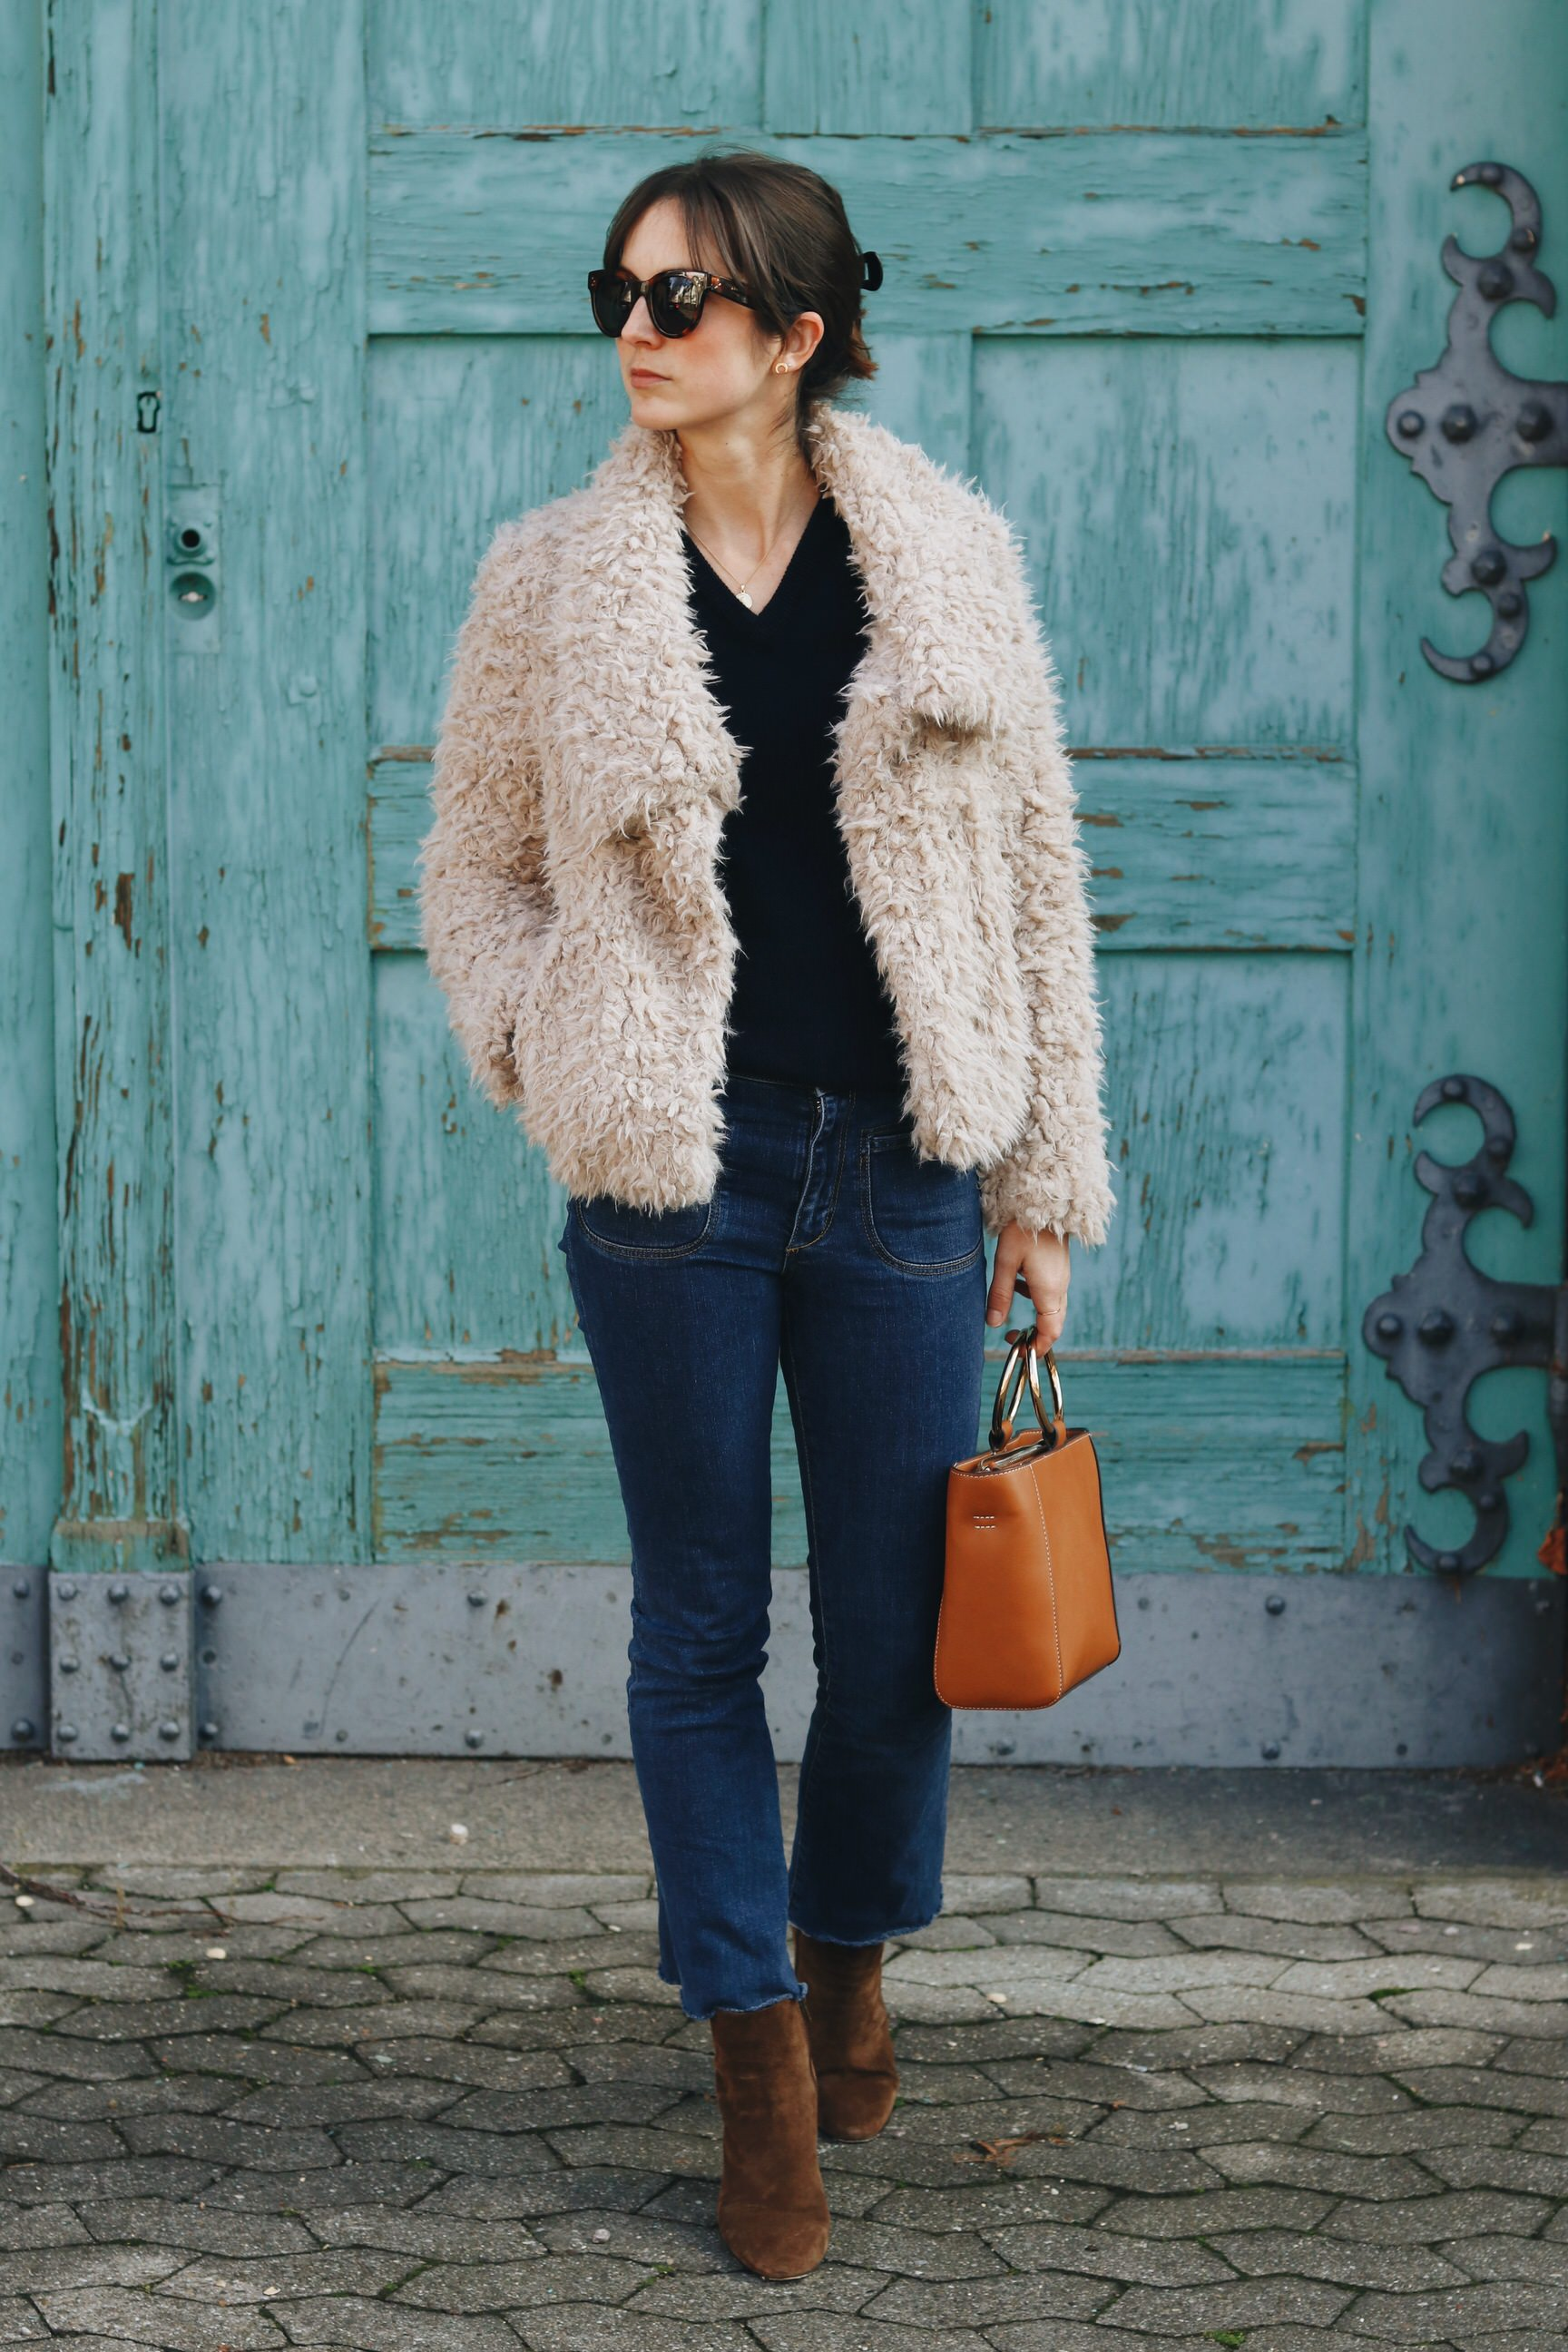 Modeblog Modebloggerin Outfit streetstyle Instagram Look Fake Fur Jacke Fairtrade Pullover Kick Flare Jeans Fashion Outfitpost